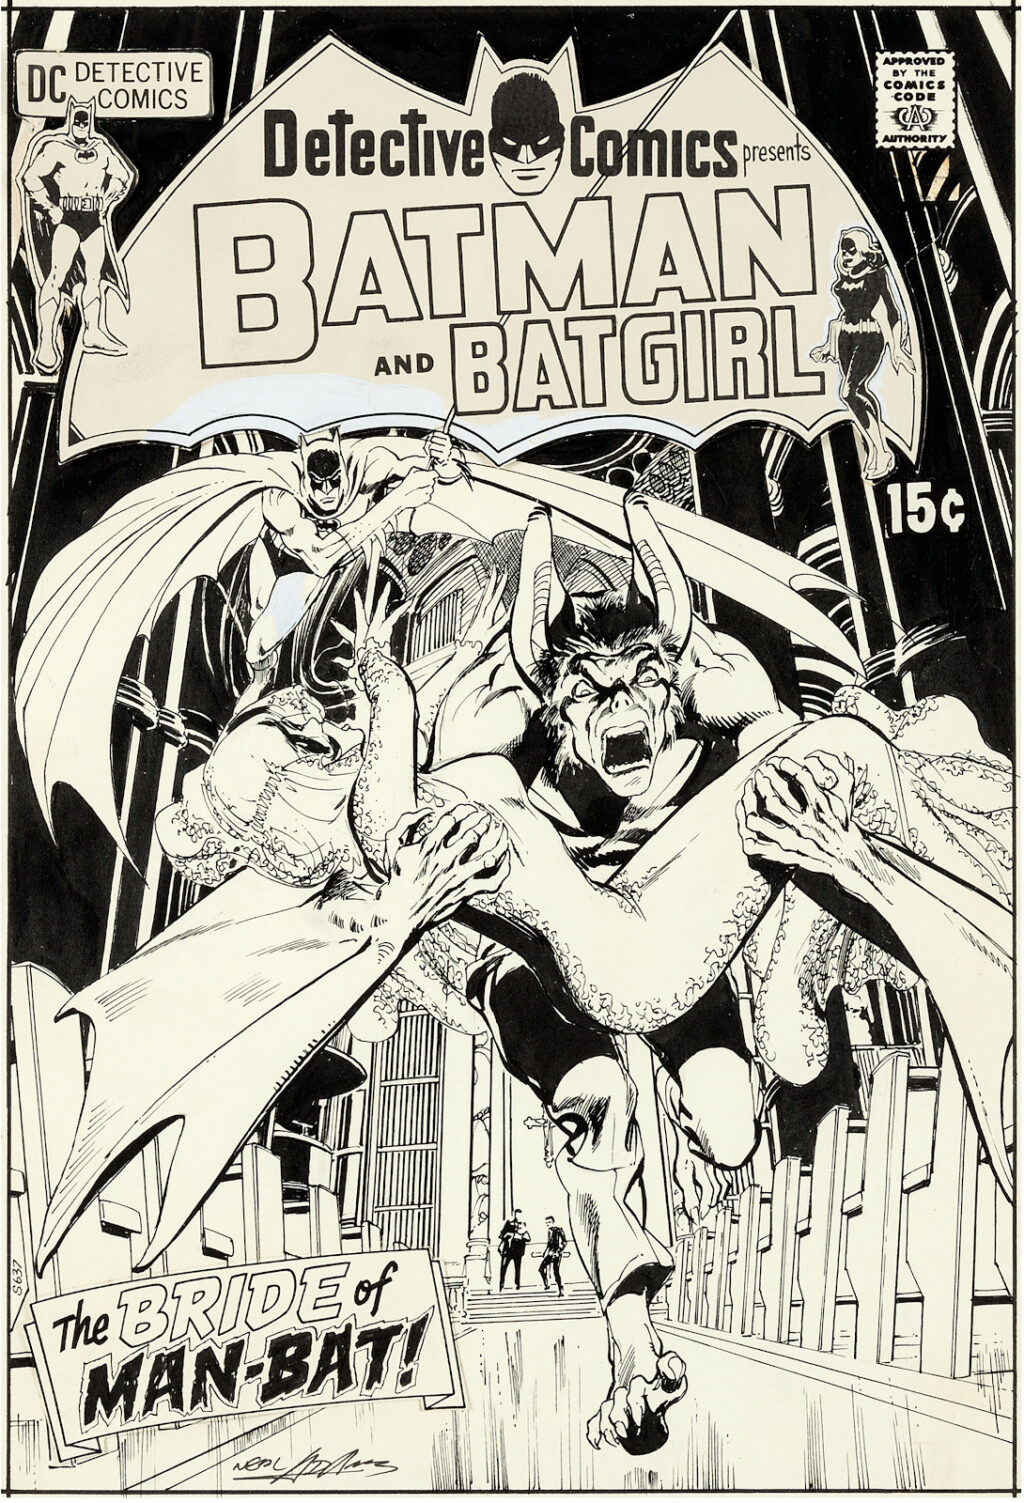 Detective Comics issue 407 cover by Neal Adams